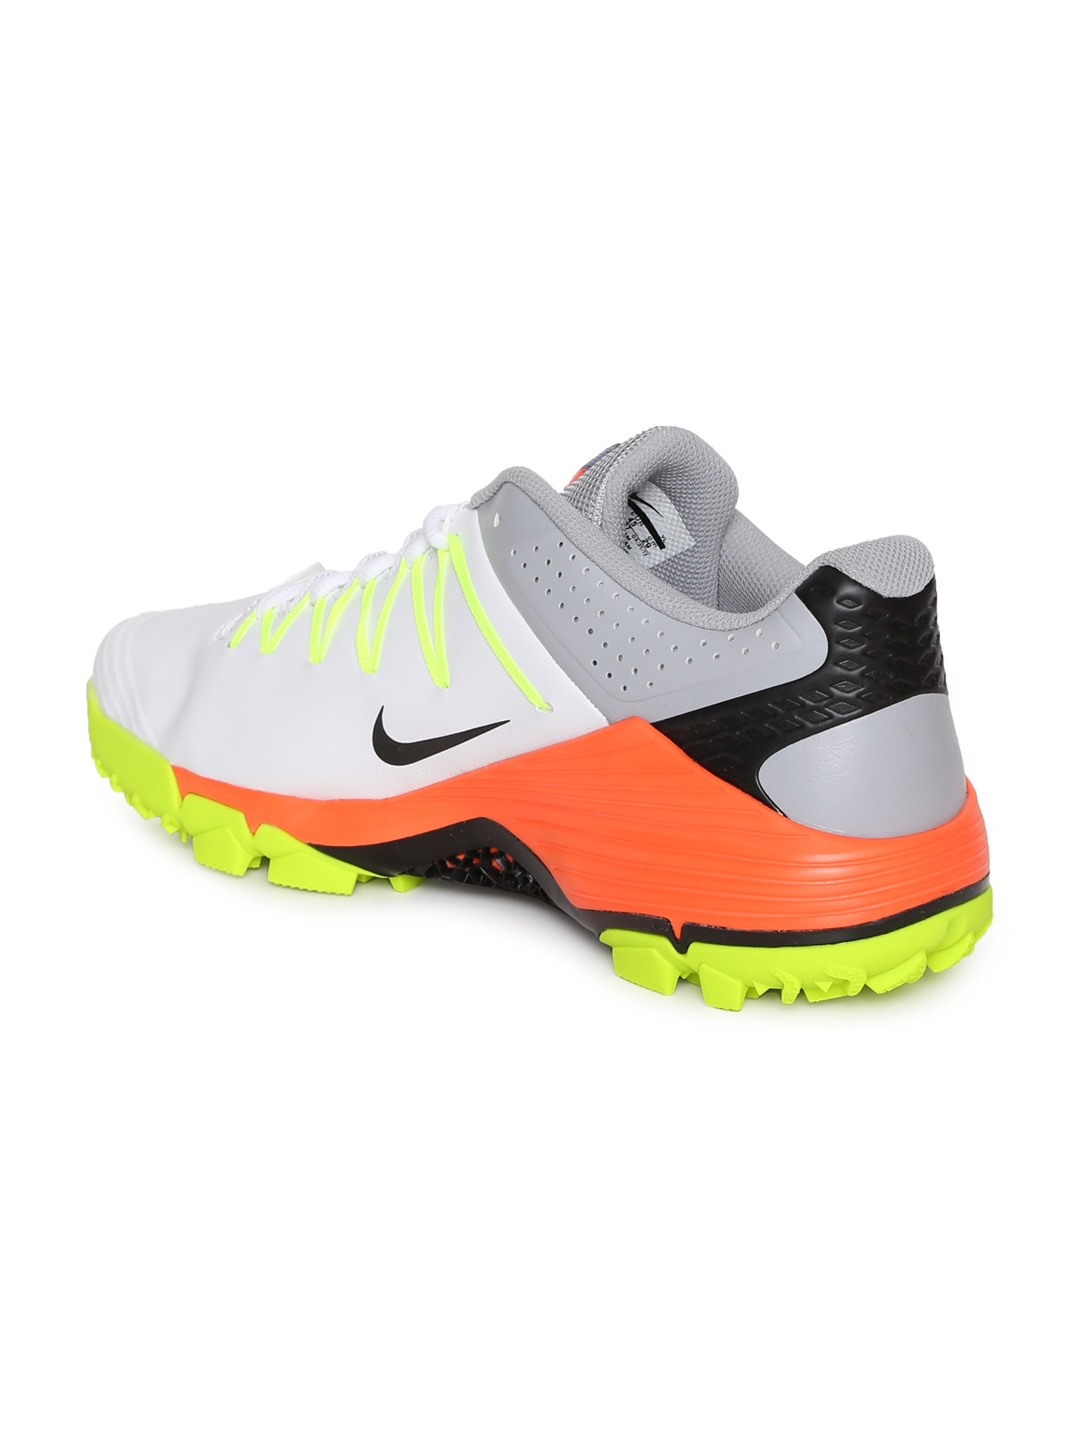 Sports 2 Men Cricket Koop White Domain voor Nike Shoes HT0wxqP4B